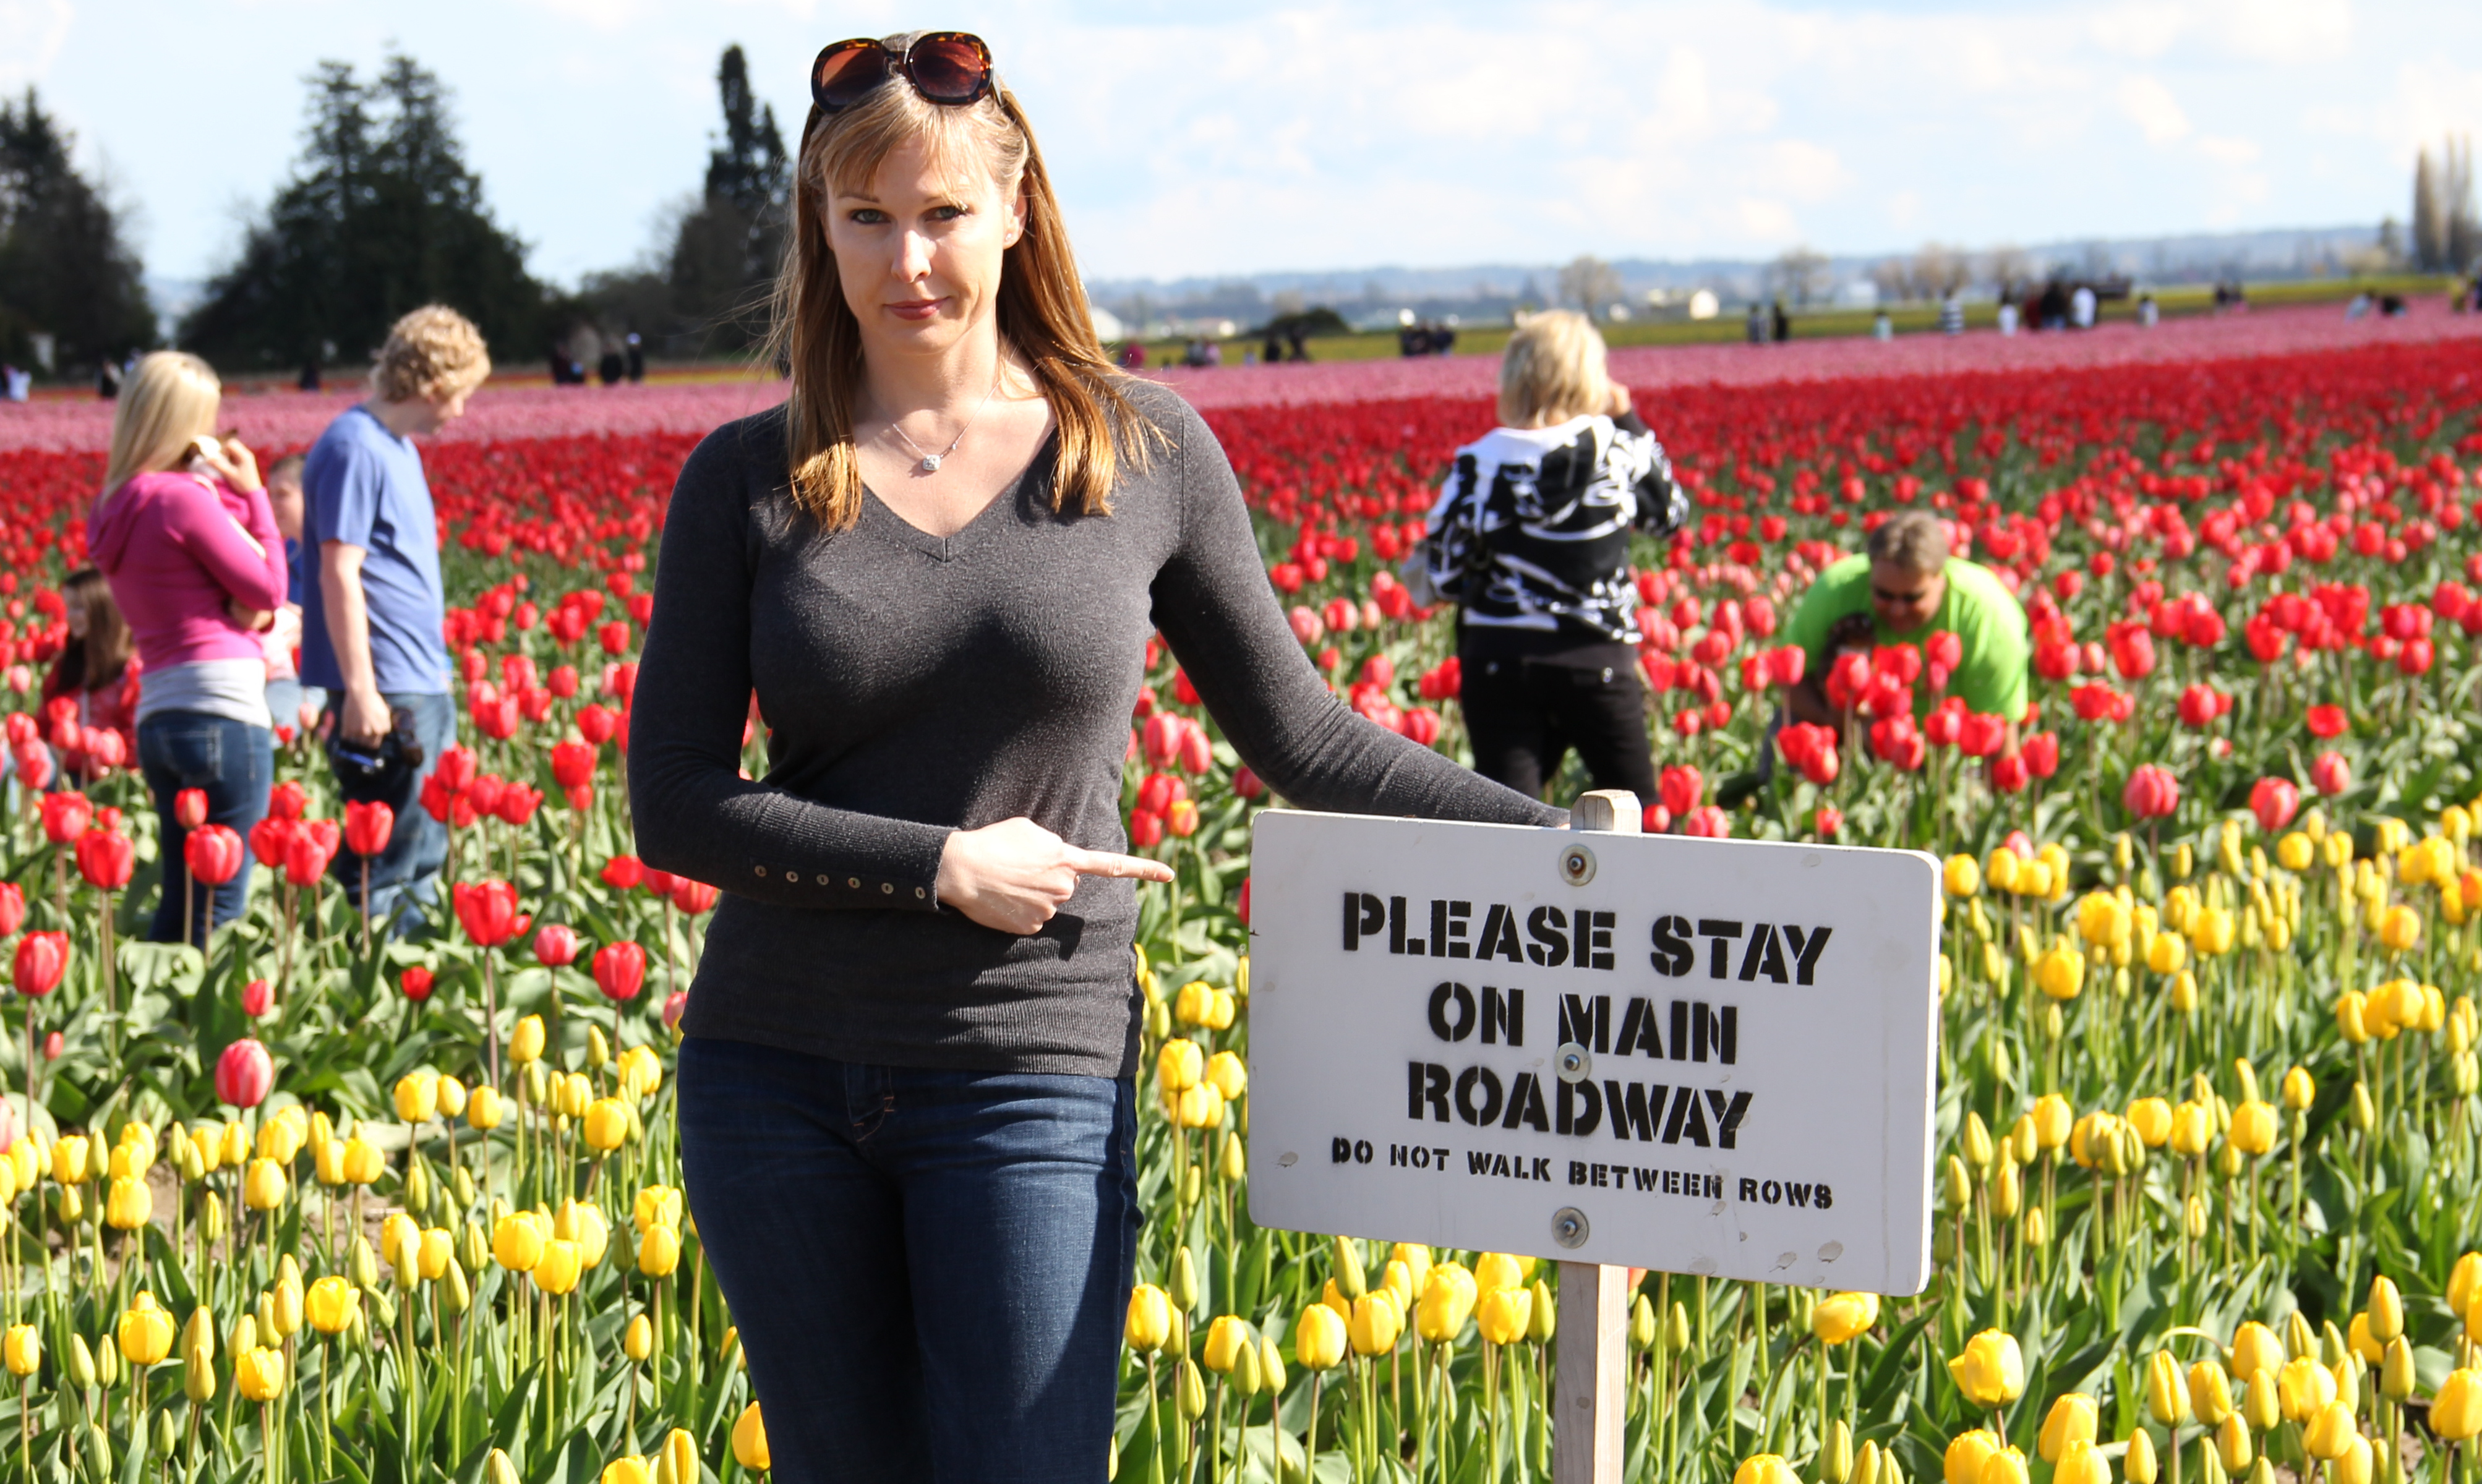 Tulip Festival Bloom Map Tulips are Blooming in Skagit Valley | OC 2 Seattle Tulip Festival Bloom Map